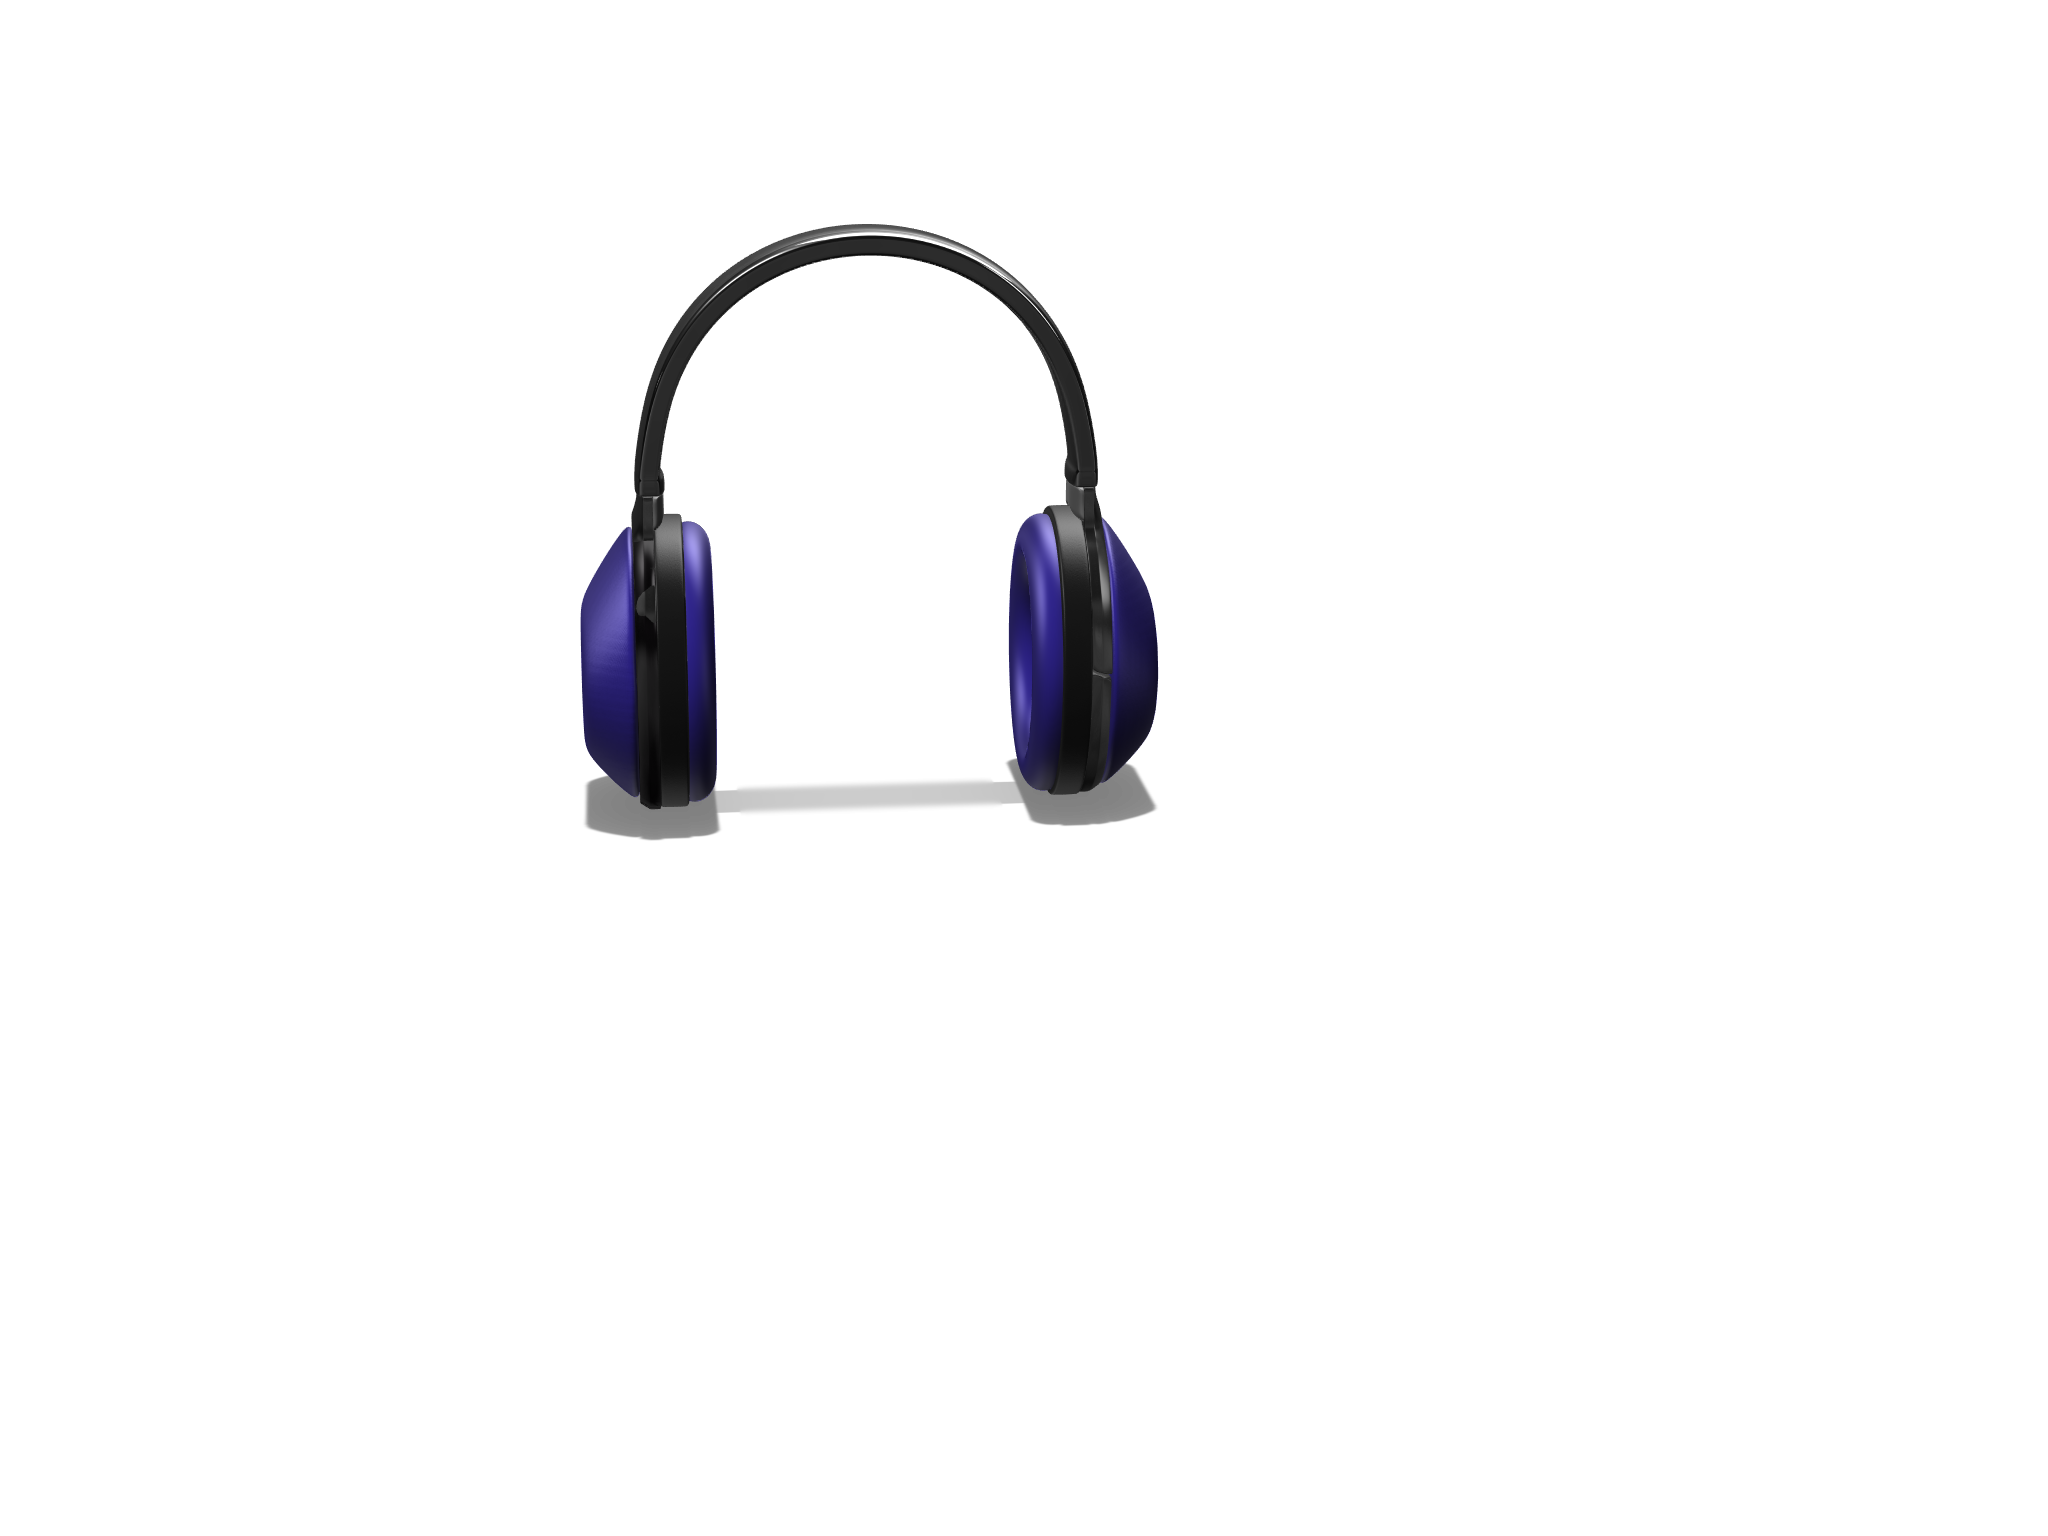 Headphone001 - 3D design by Nuno Carloto Mar 17, 2018